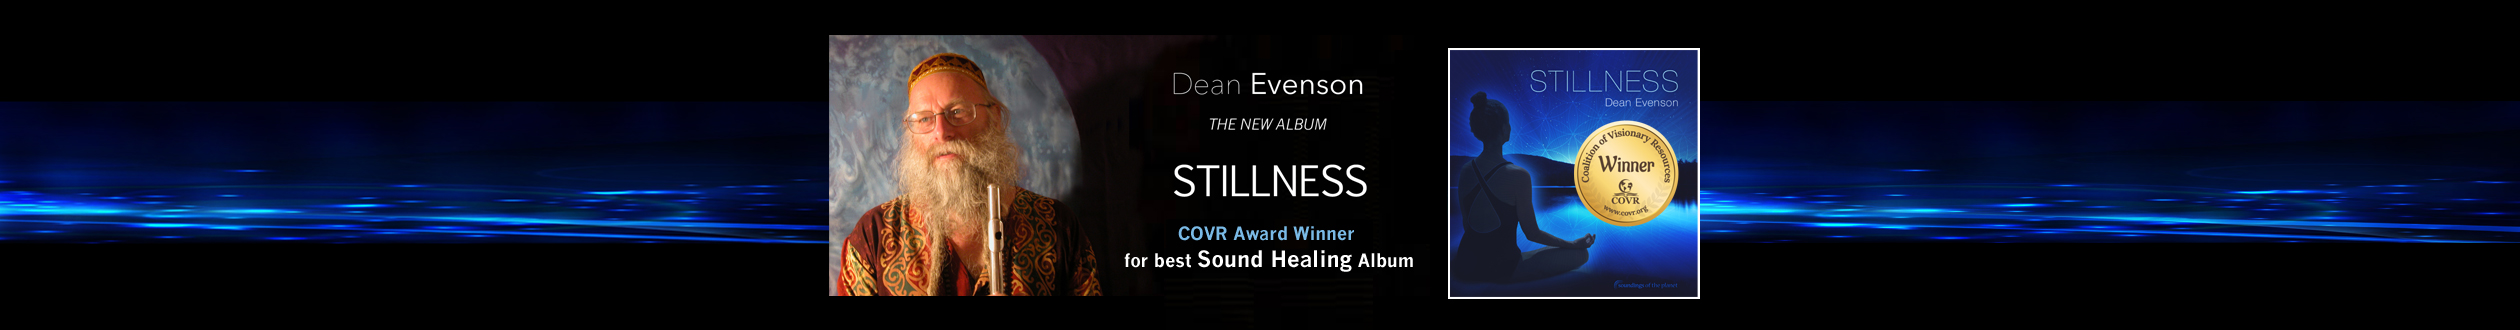 Announce-Stillness-Banner-Slider-COVR-Award-Winner_edited-4